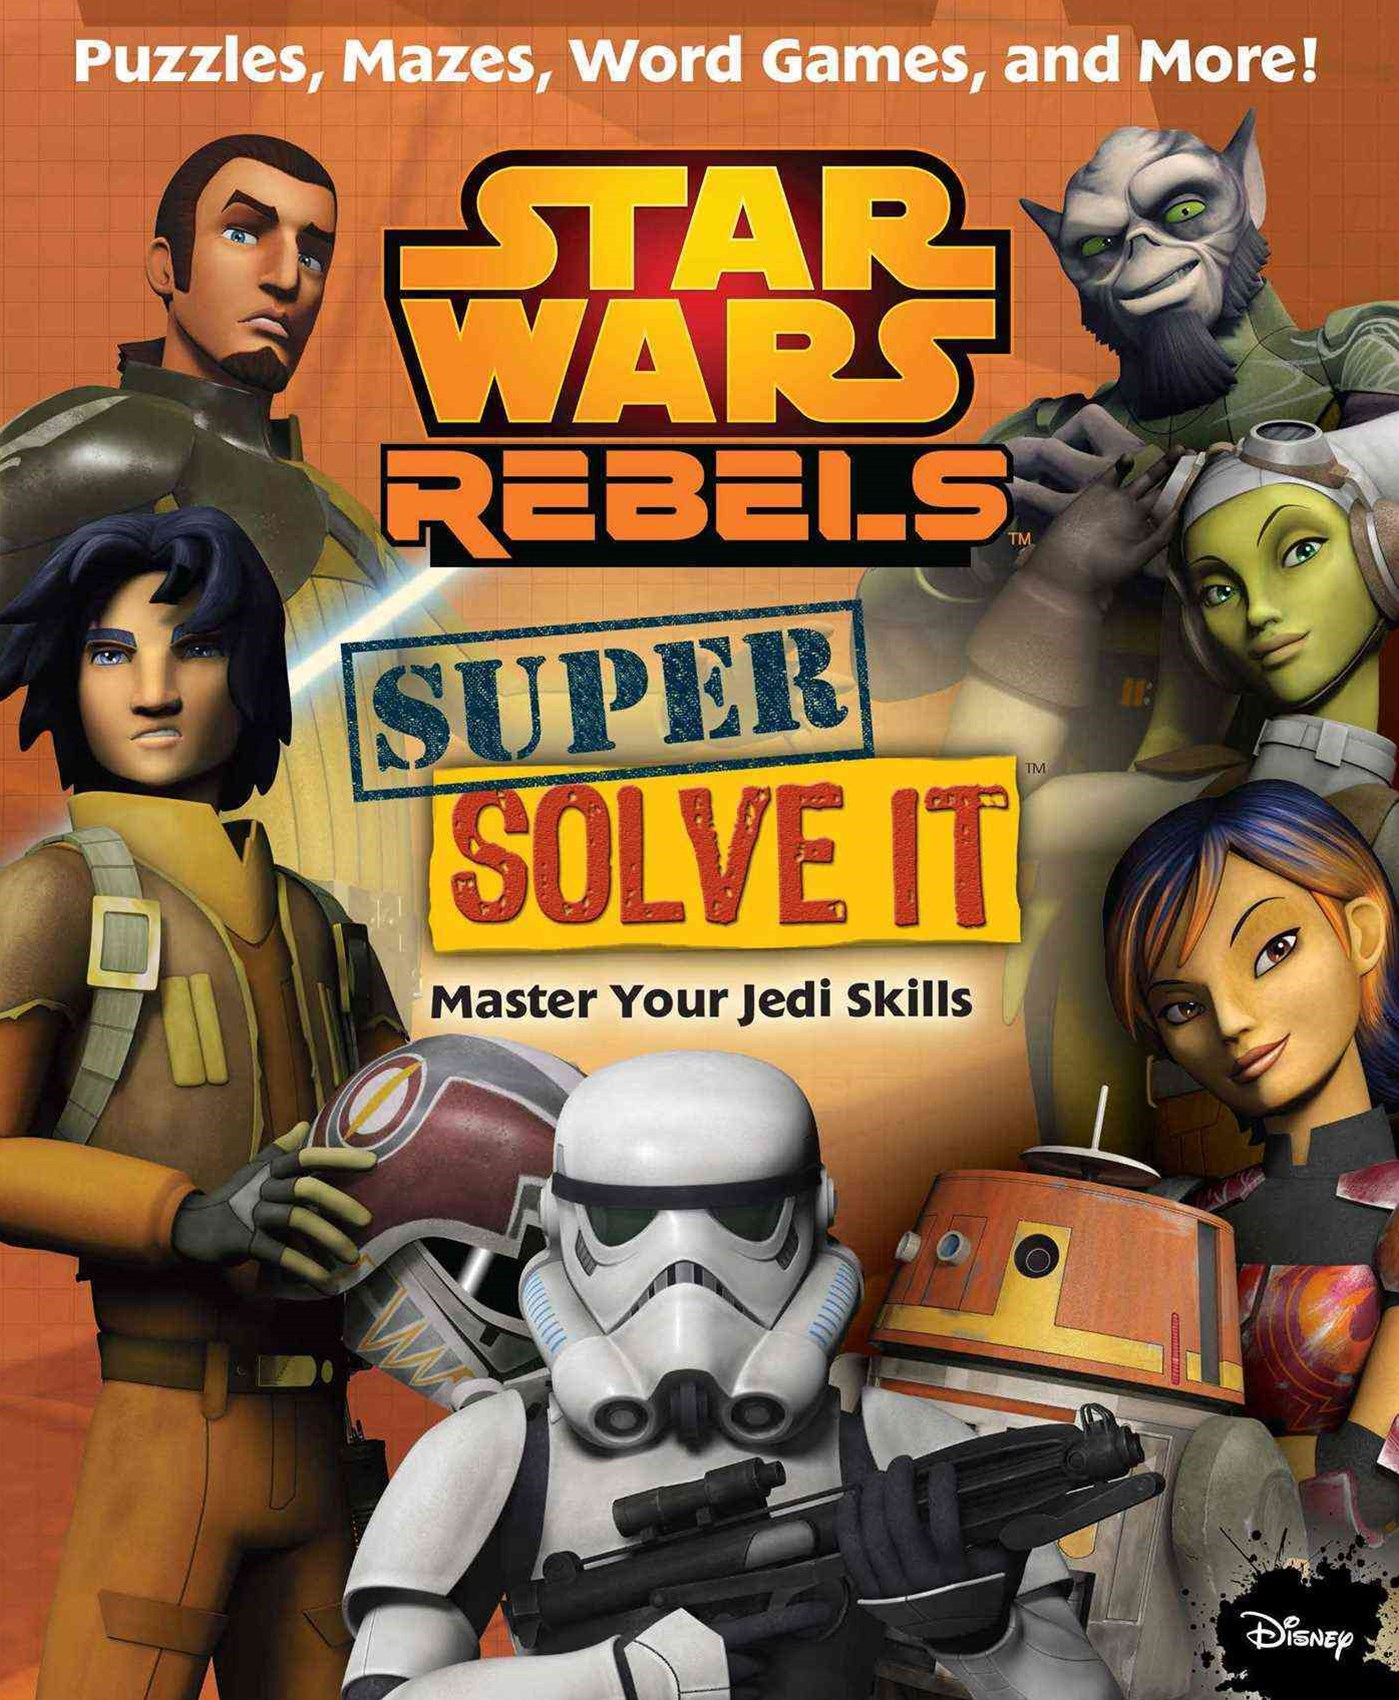 Star Wars Rebels - Find It Solve It Match It